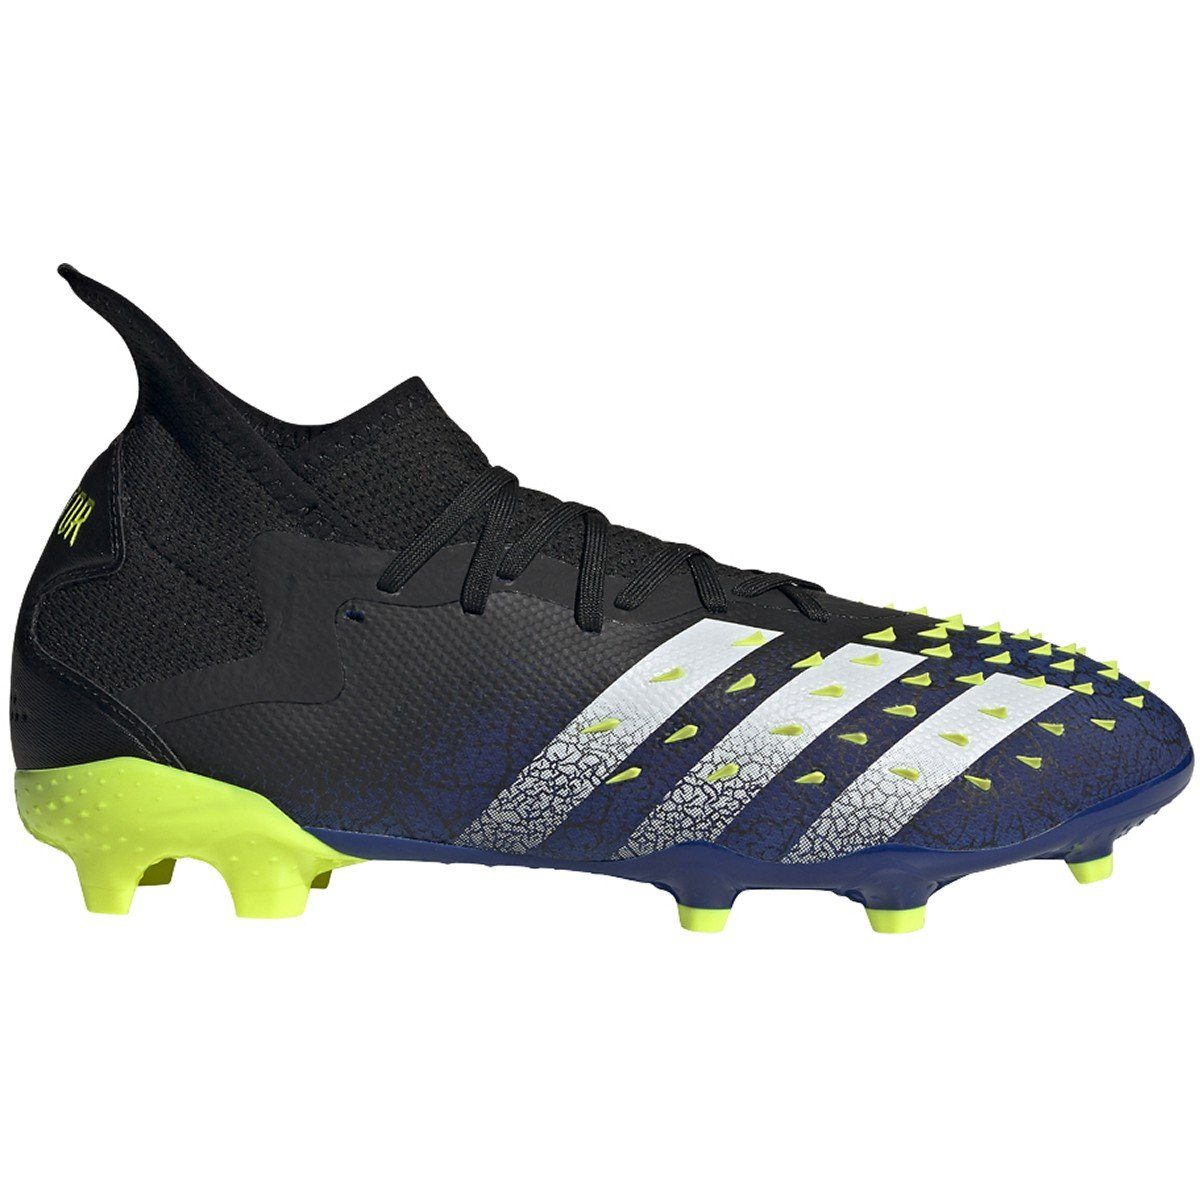 adidas Men's Predator Freak .2 Firm Ground Soccer Cleats | S42980 Soccer Shoes Adidas 7.5 Black/White/Team Royal Blue